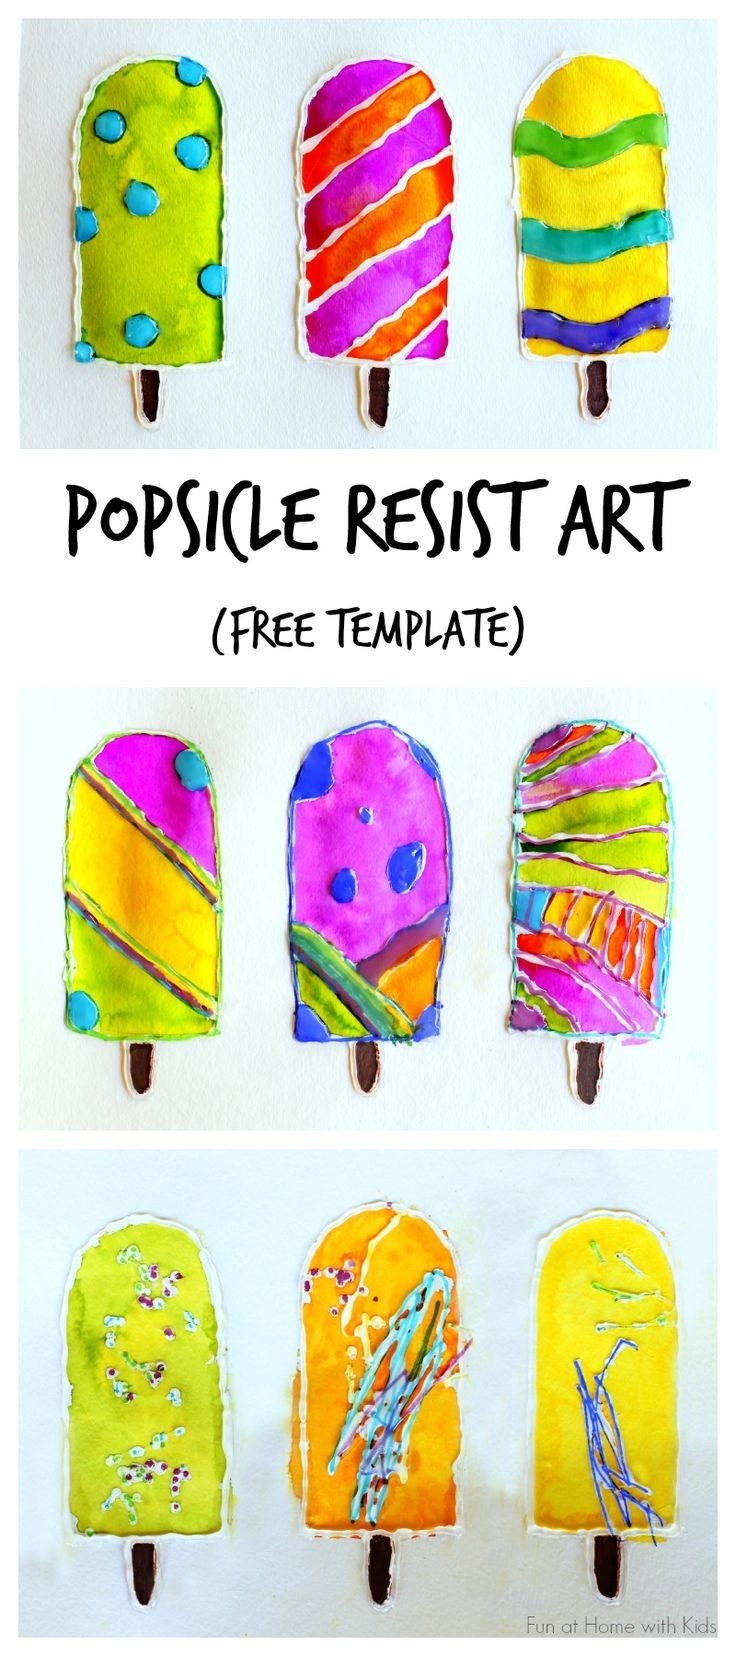 10 Elegant Summer Arts And Crafts Ideas 109 Best Spring Art Projects For Kids Images